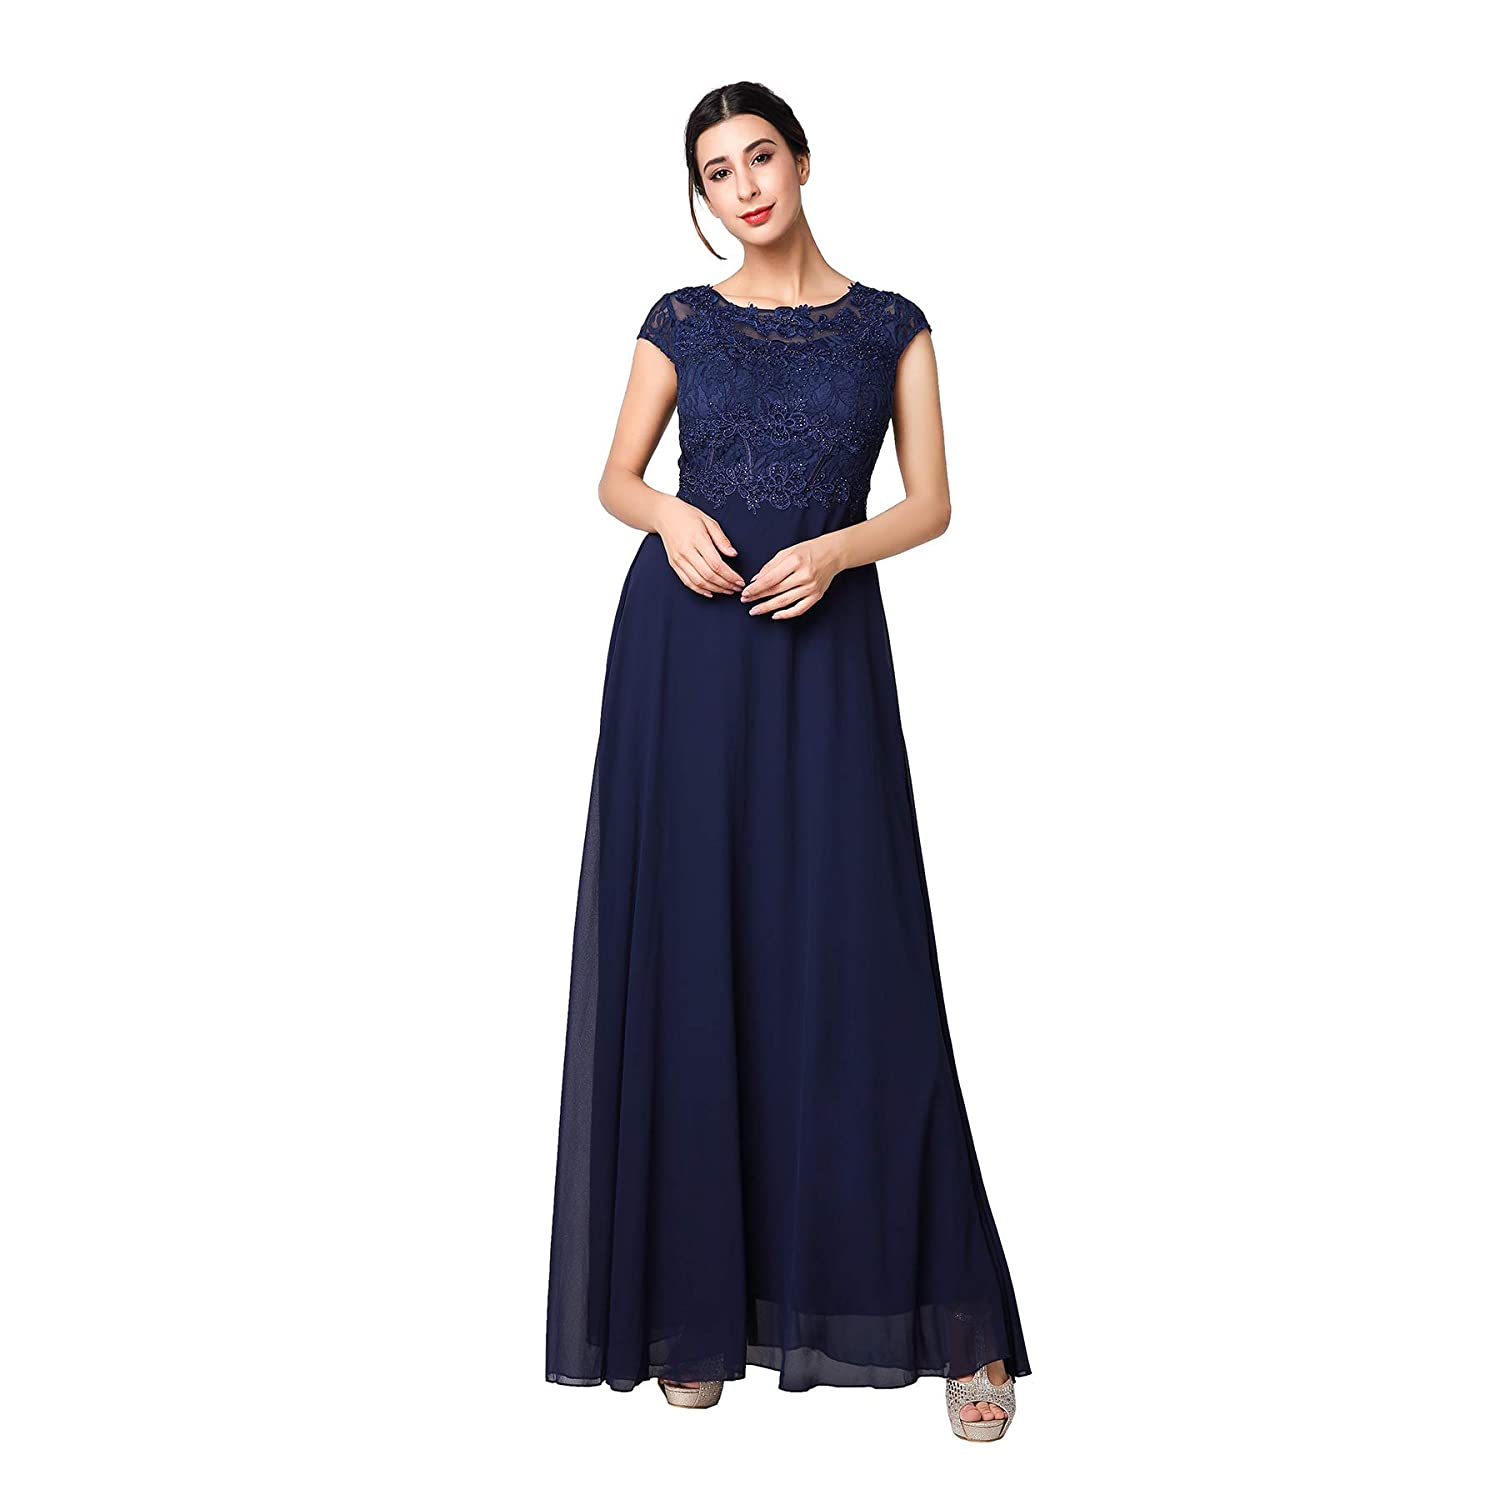 bluee KAILINLANG Elegant Cap Sleeve Round Neck Party Evening Long Dress for Women